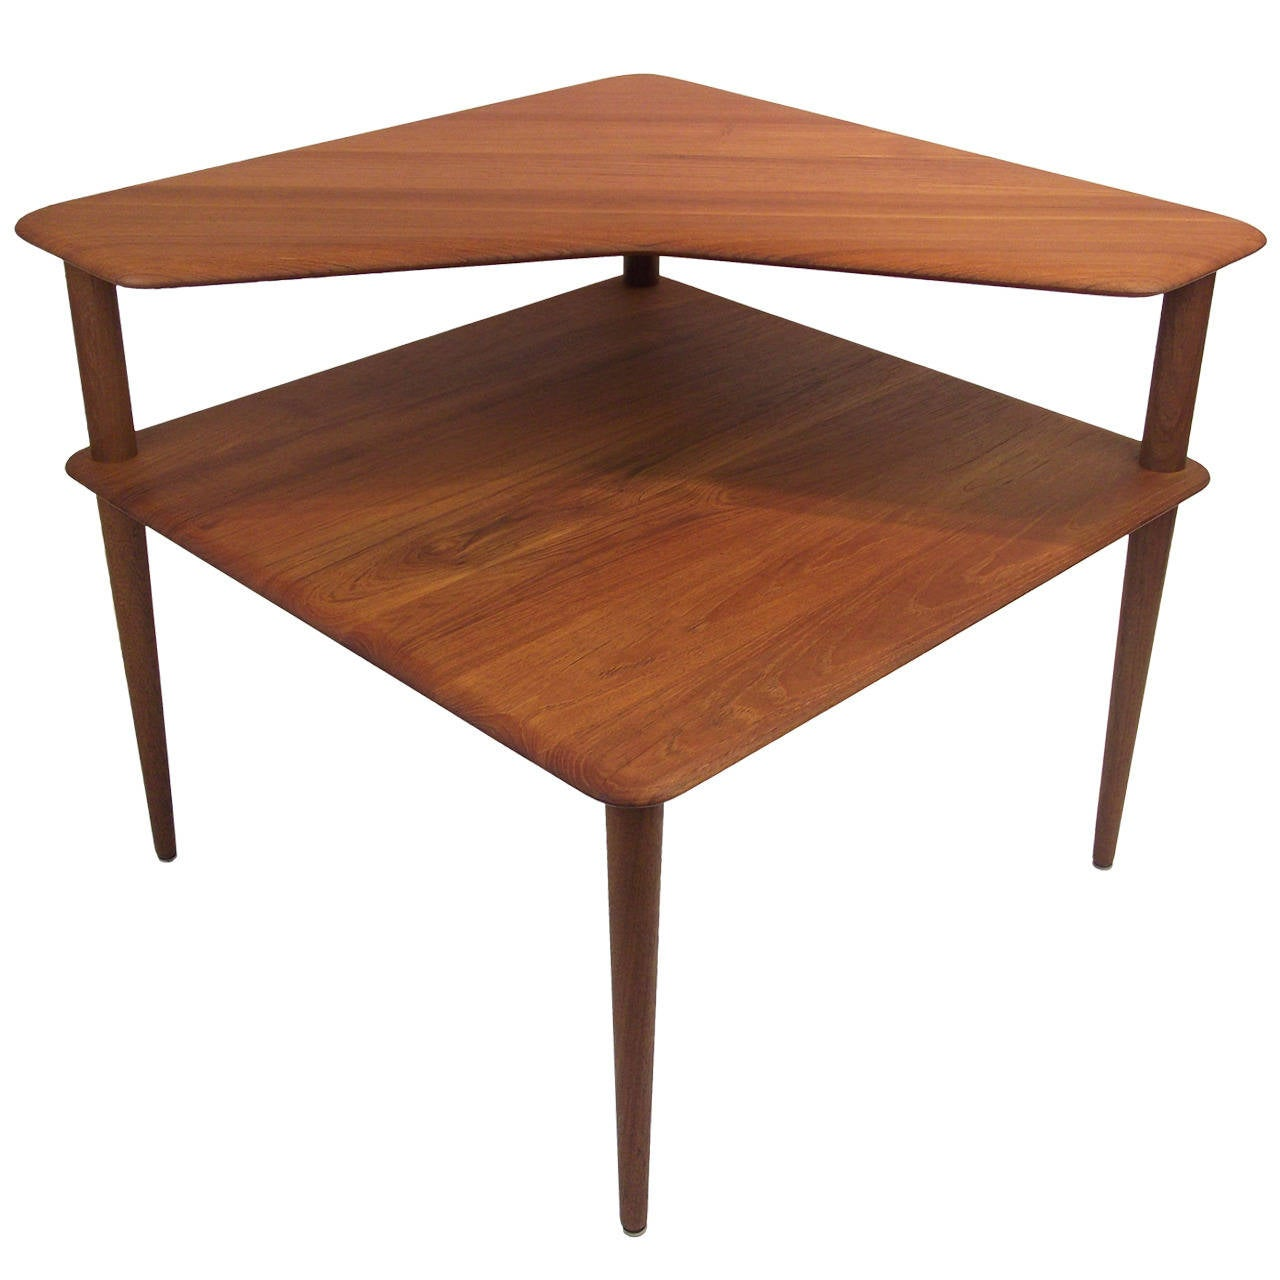 1950s Solid Teak Corner Table Designed By Peter Hvidt And